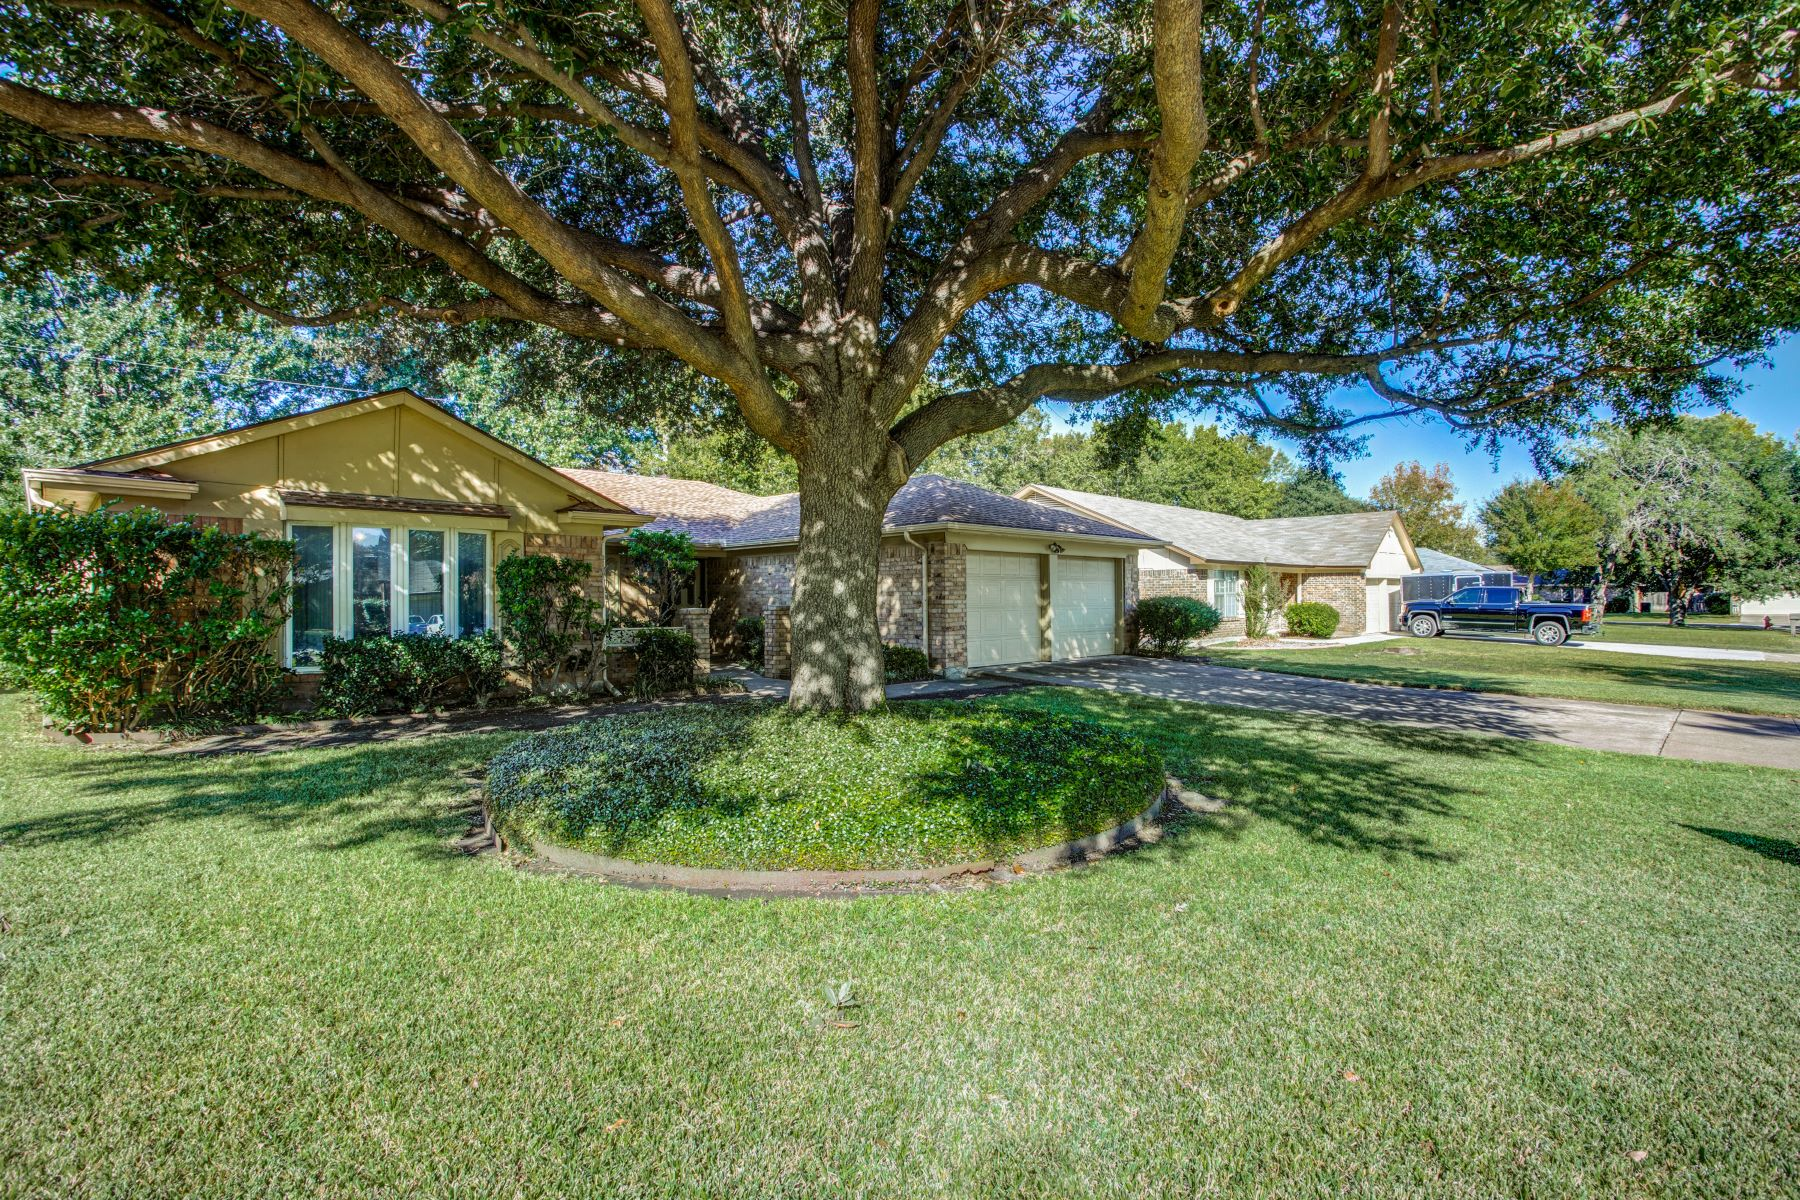 Single Family Homes for Sale at 5537 Wood View Street North Richland Hills, Texas 76180 United States